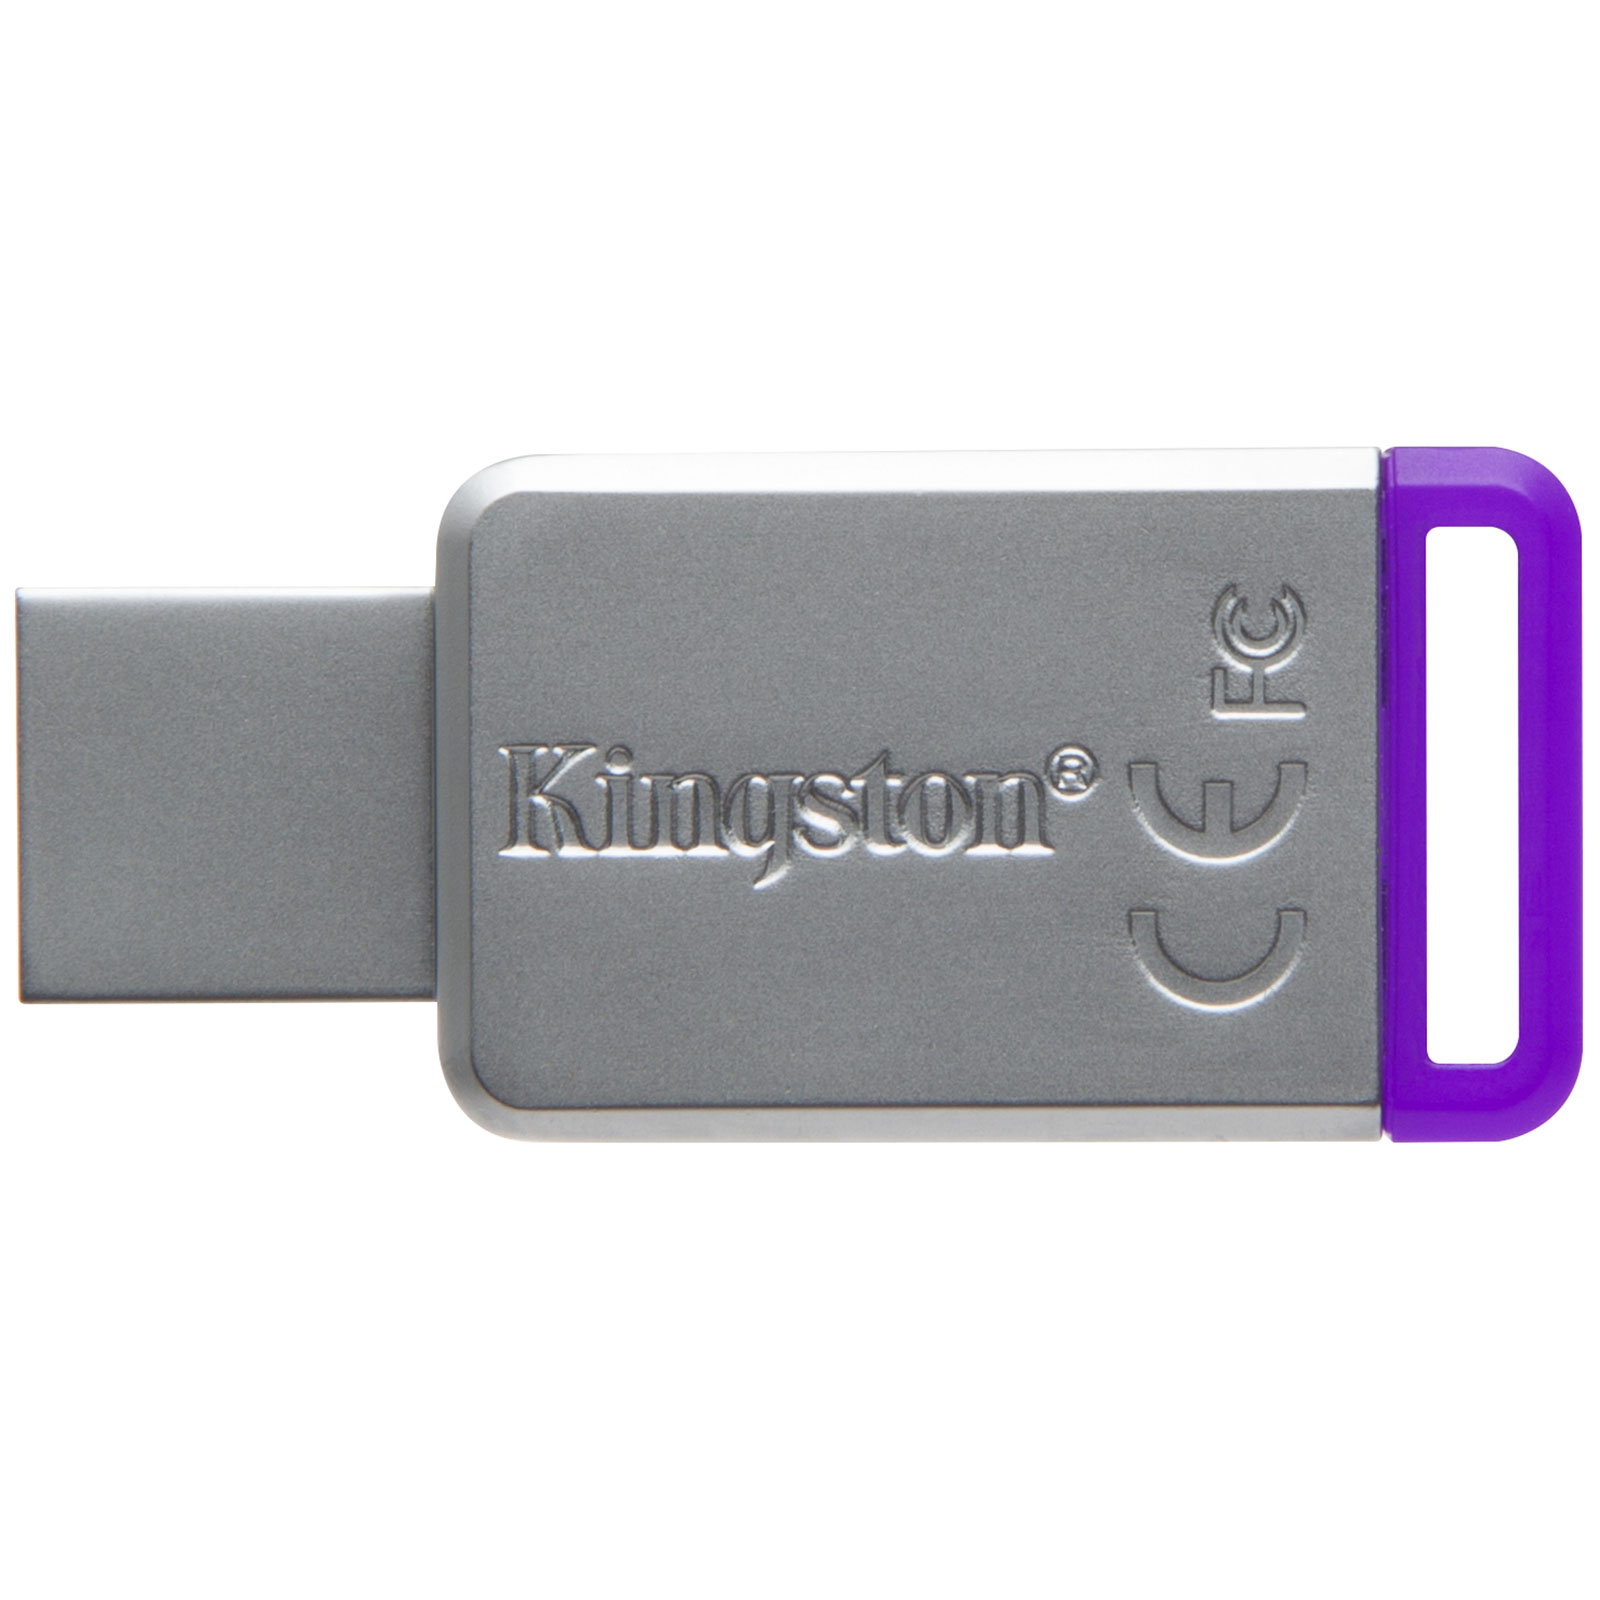 Kingston 8Go USB 3.1 - Clé USB Kingston - Cybertek.fr - 2